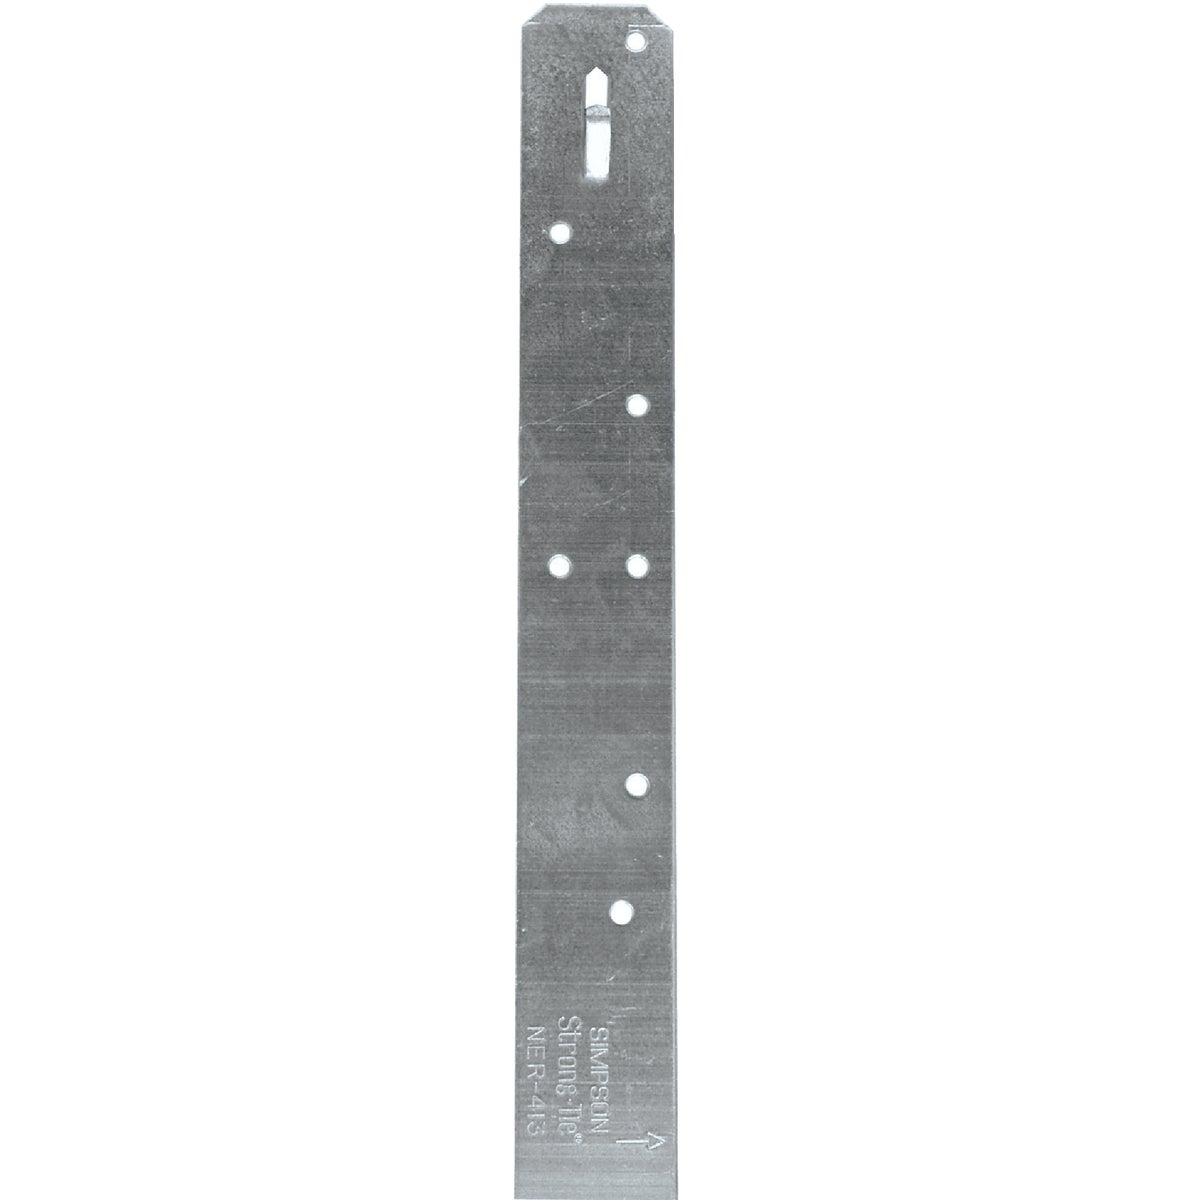 """18"""" STRAP TIE - ST18 by Simpson Strong Tie"""